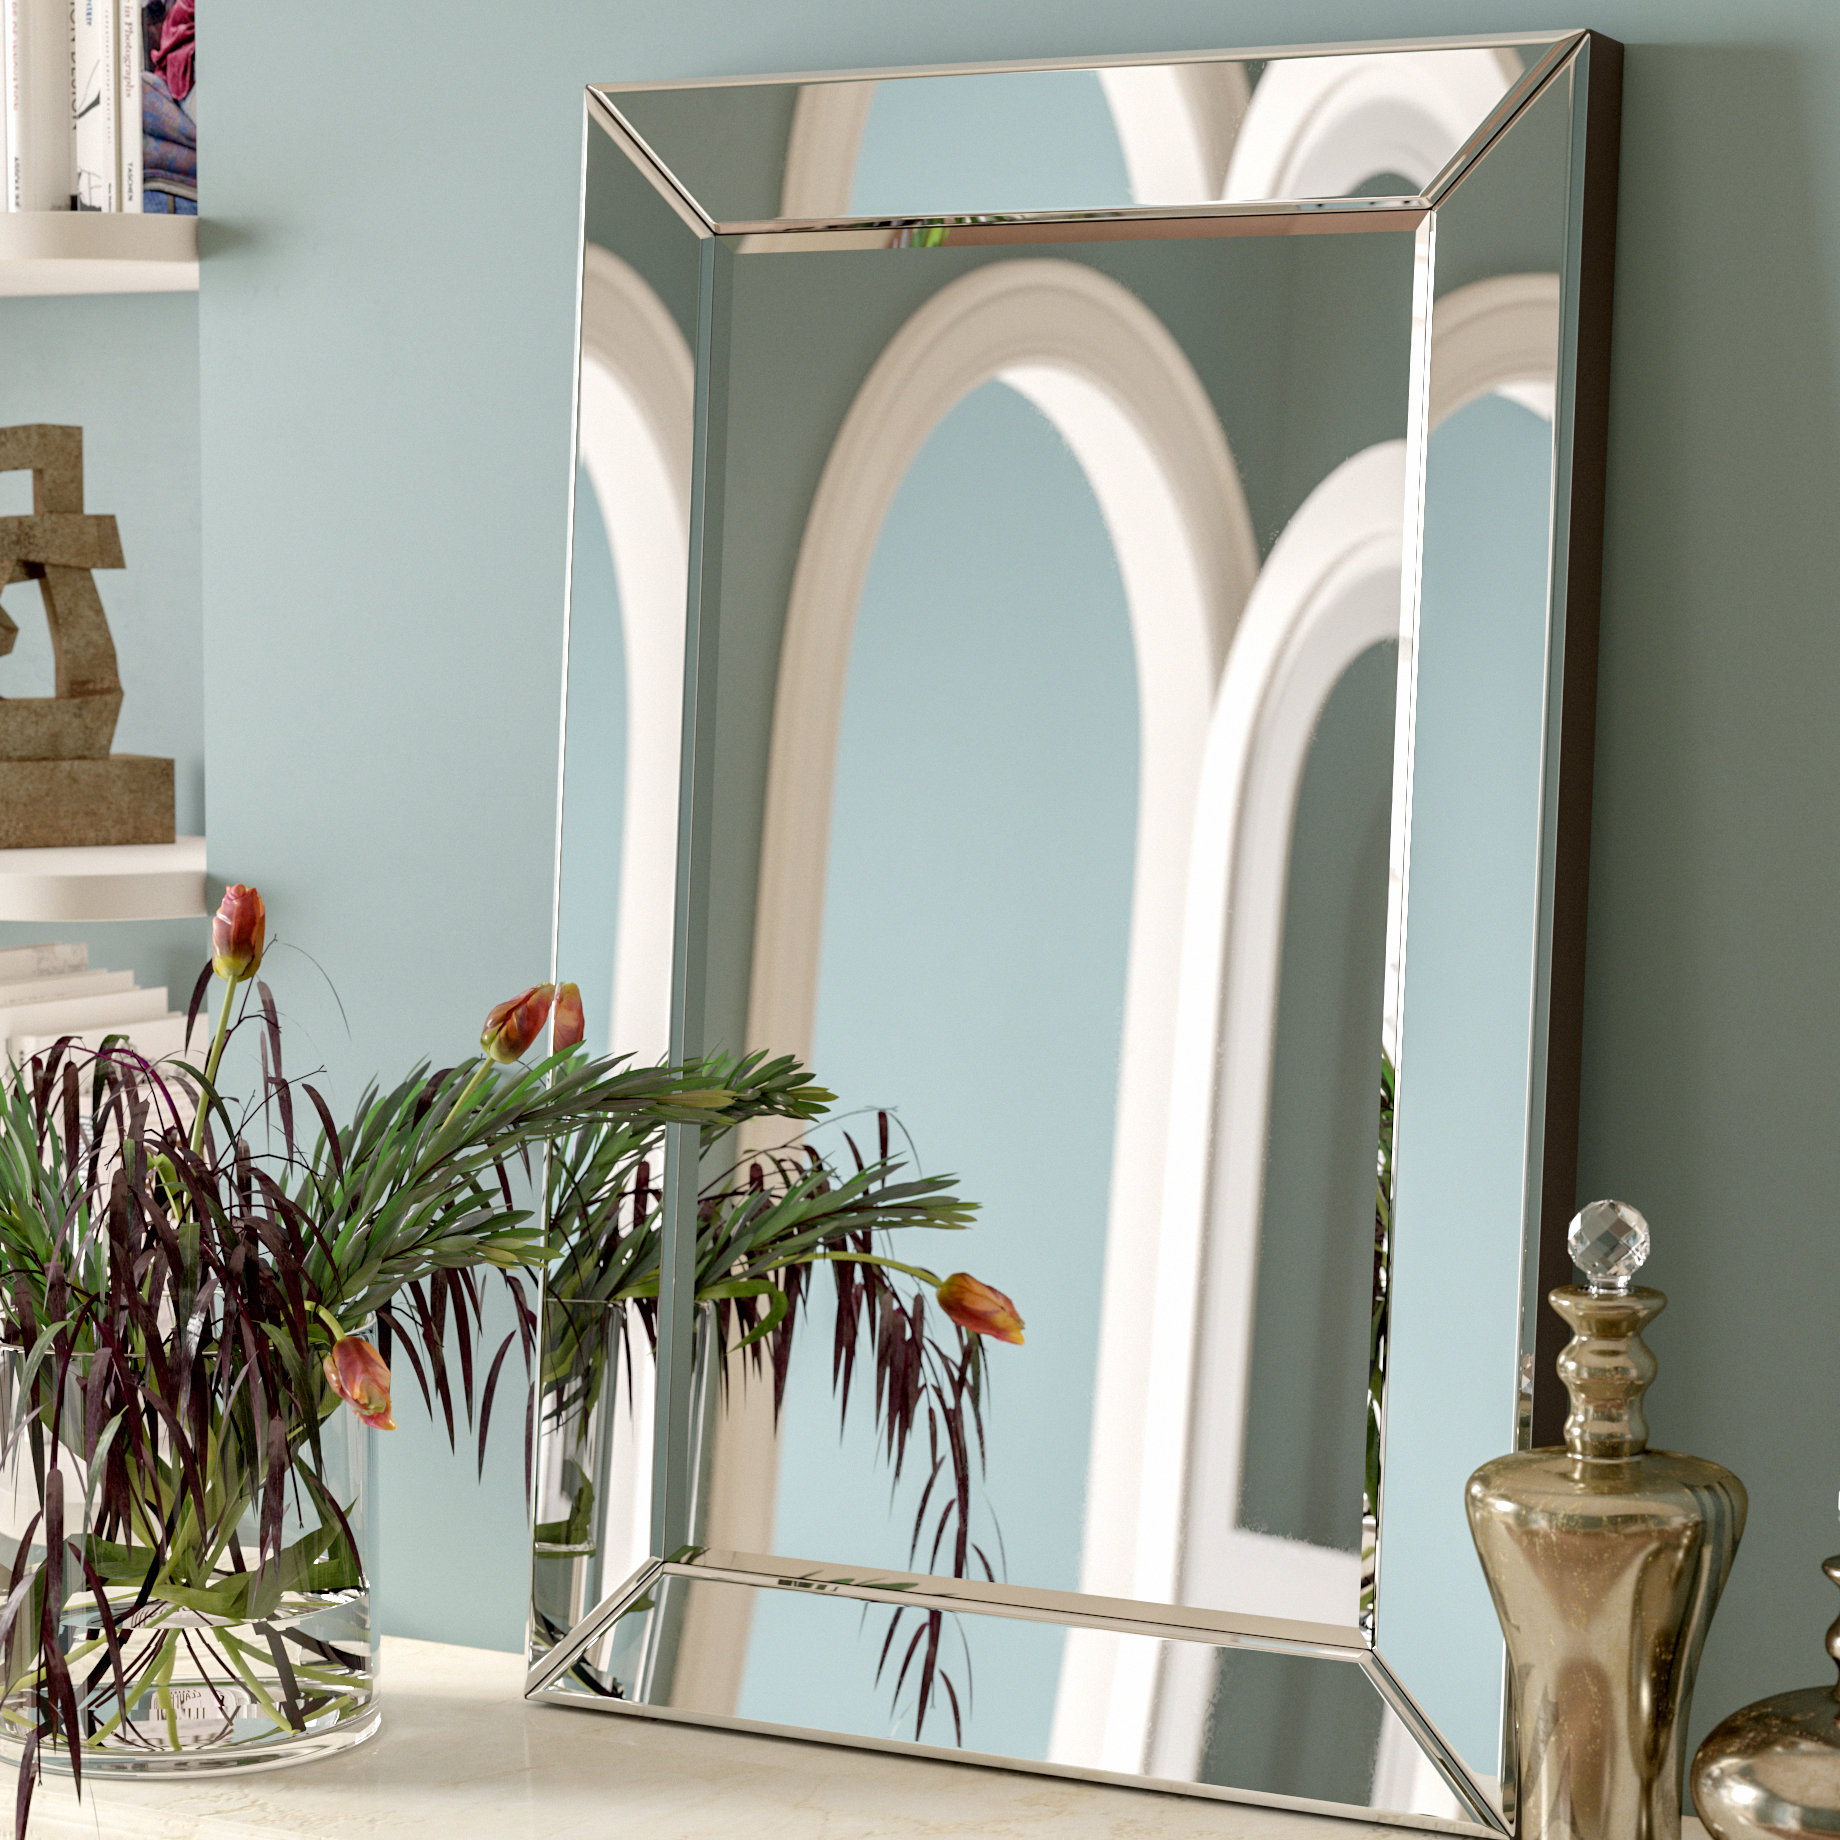 Minerva Accent Mirror | Wayfair with regard to Minerva Accent Mirrors (Image 22 of 30)